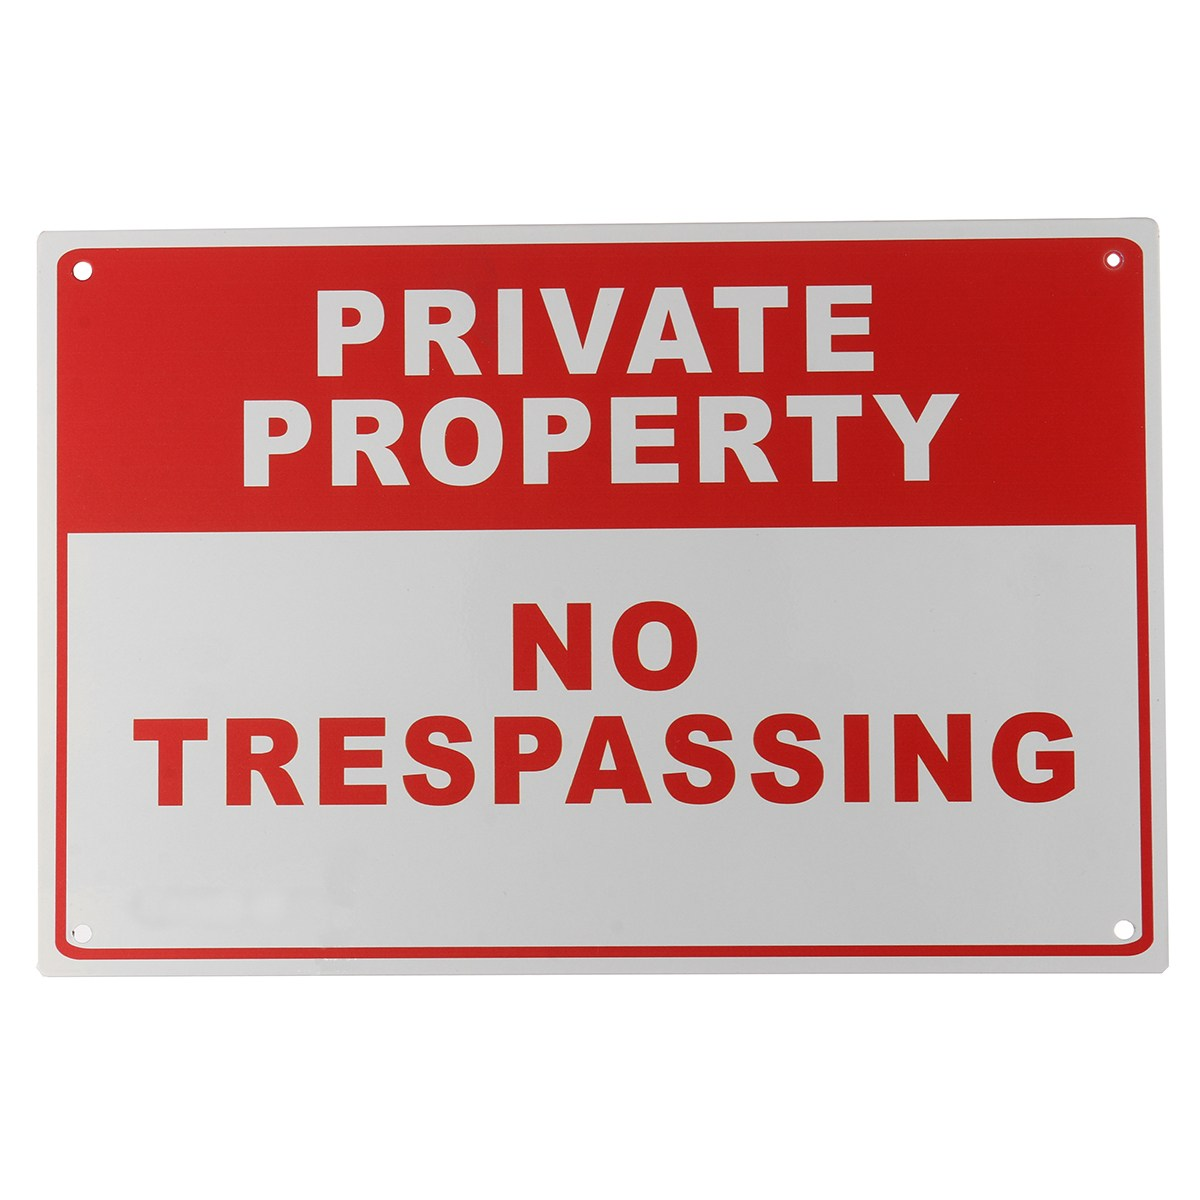 Safurance Private Property No Trespassing Metal Safety Warning Sign 4 Drilled Hole 20x30cm Home Security fire dept no problem metal tin sign 16 x 12 5